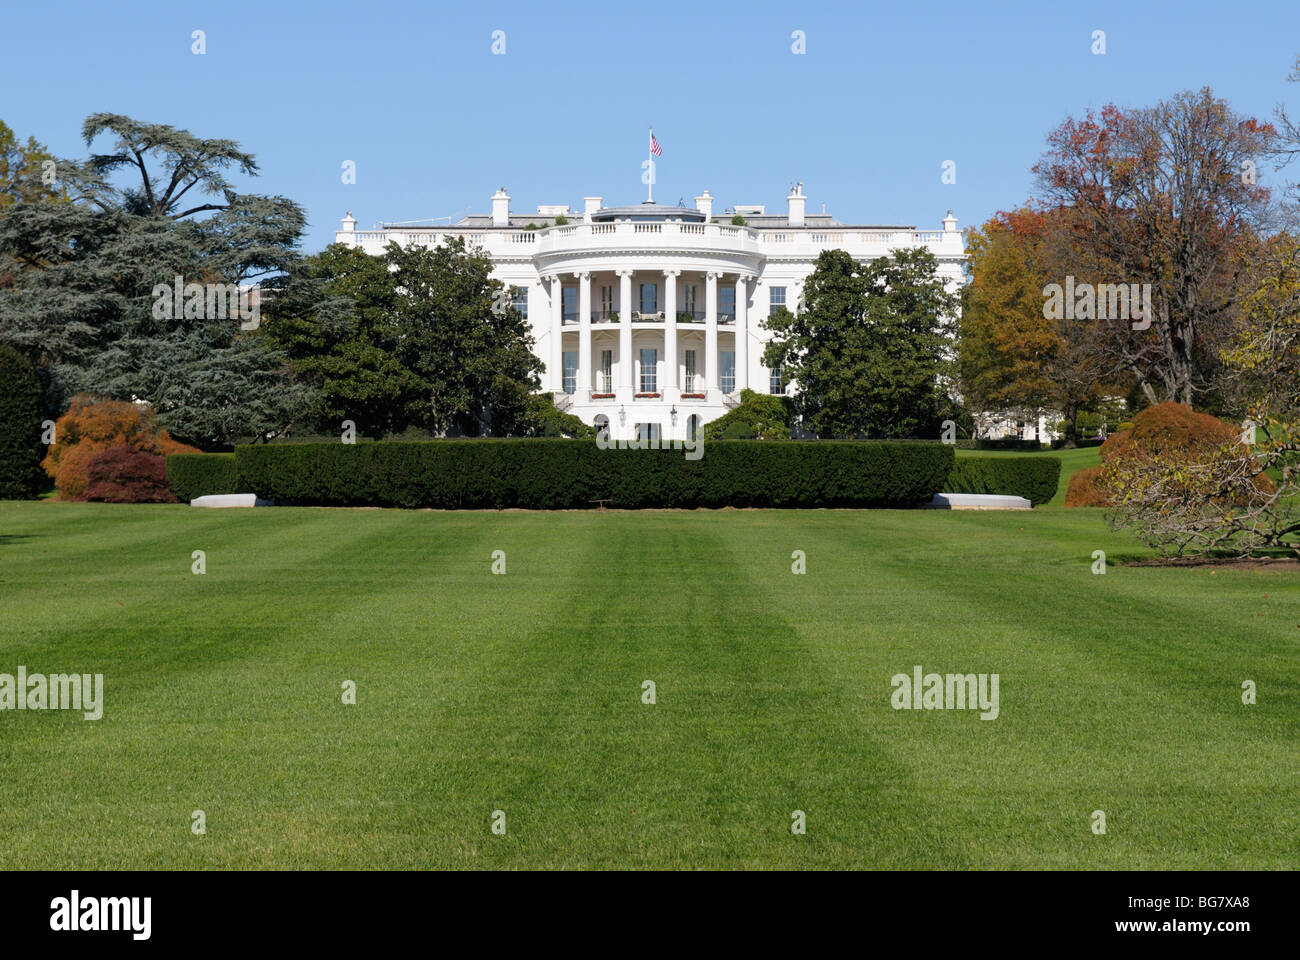 The White House with the South Lawn - Stock Image